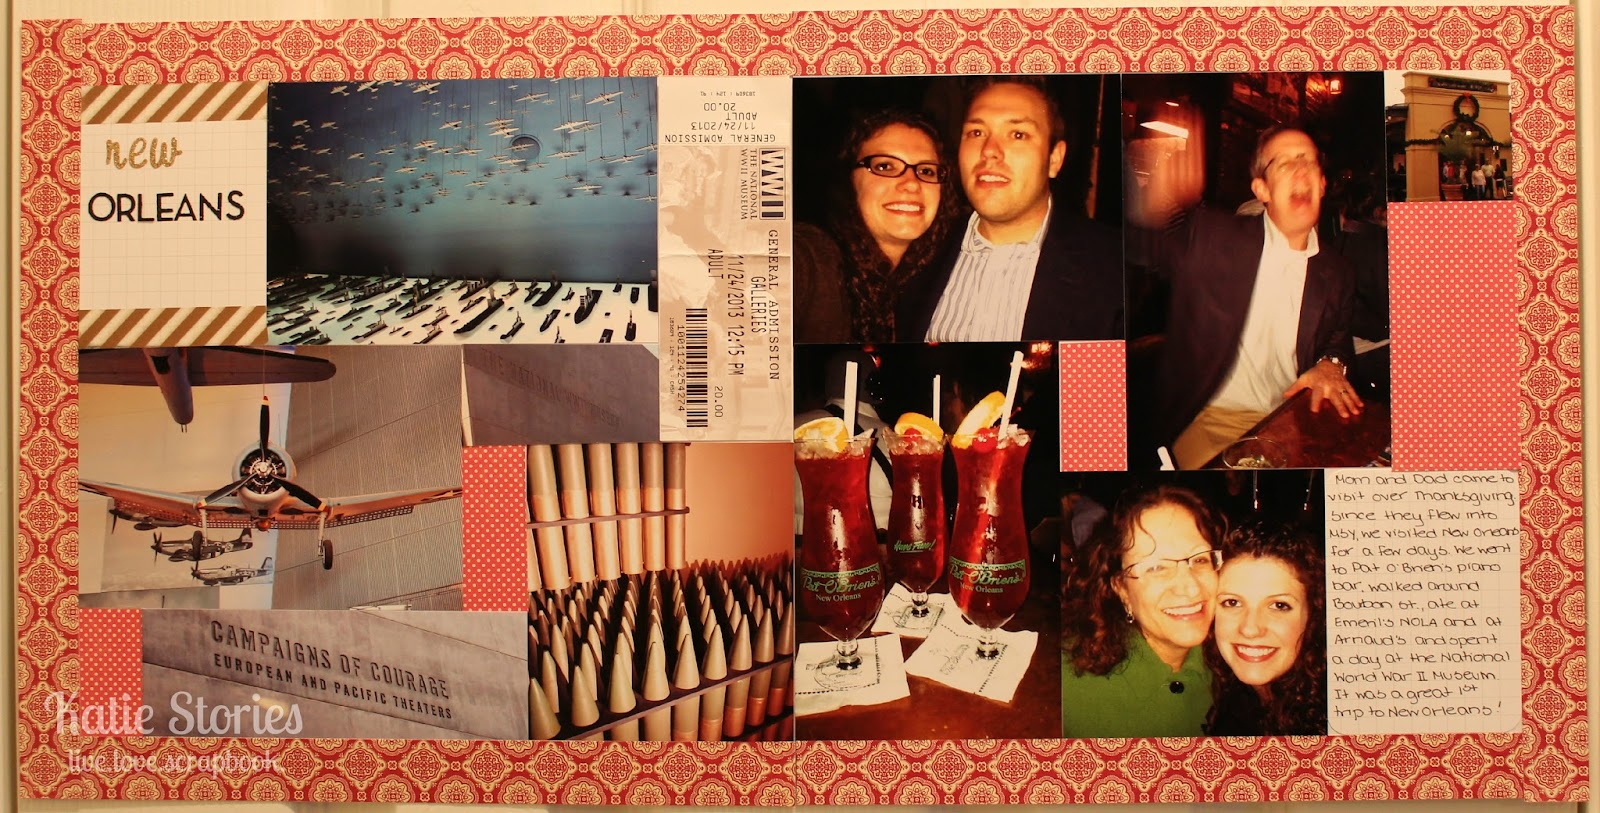 Scrapbook ideas new orleans - The Left Side Of The Layout Features The Wwii Museum Where We Spent A Majority Of Our Day On Sunday And On The Right Side There Are All The Pictures Of Us